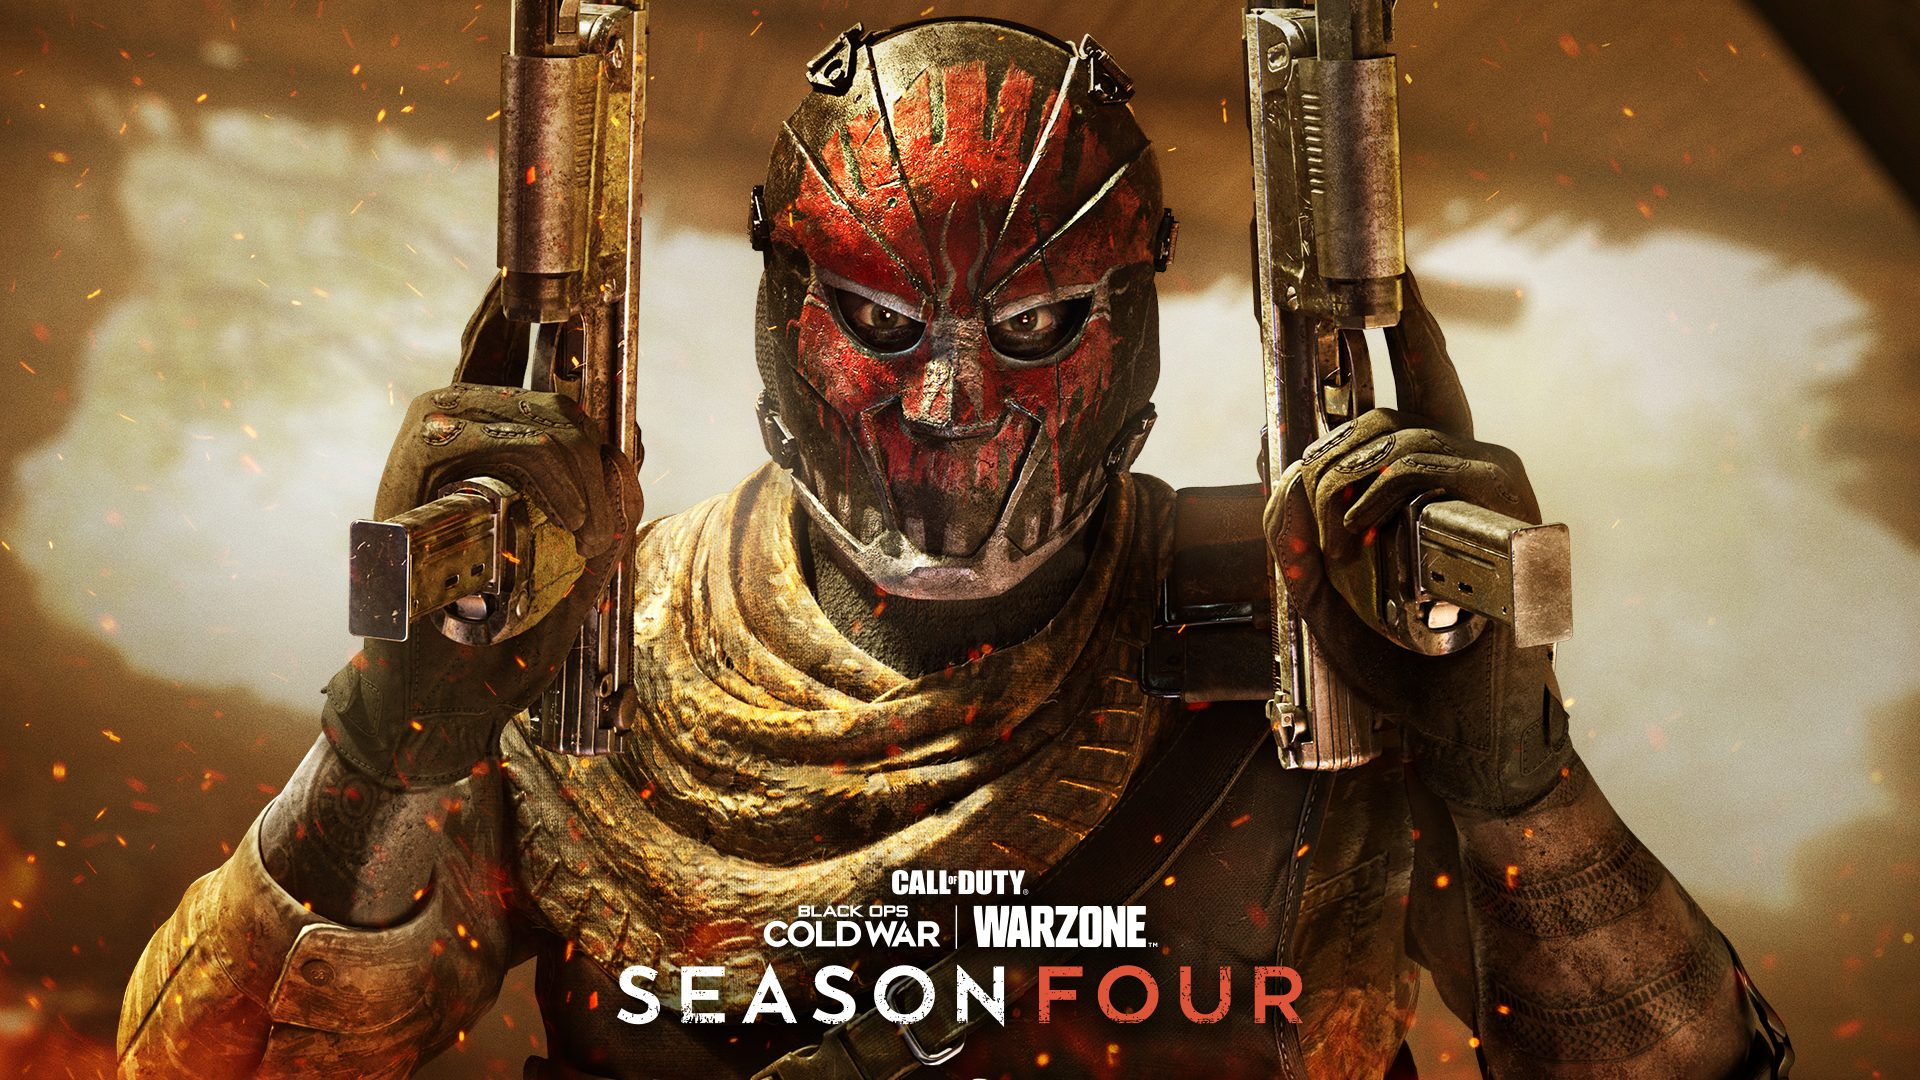 Season Four of Black Ops Cold War and Warzone lands June 17